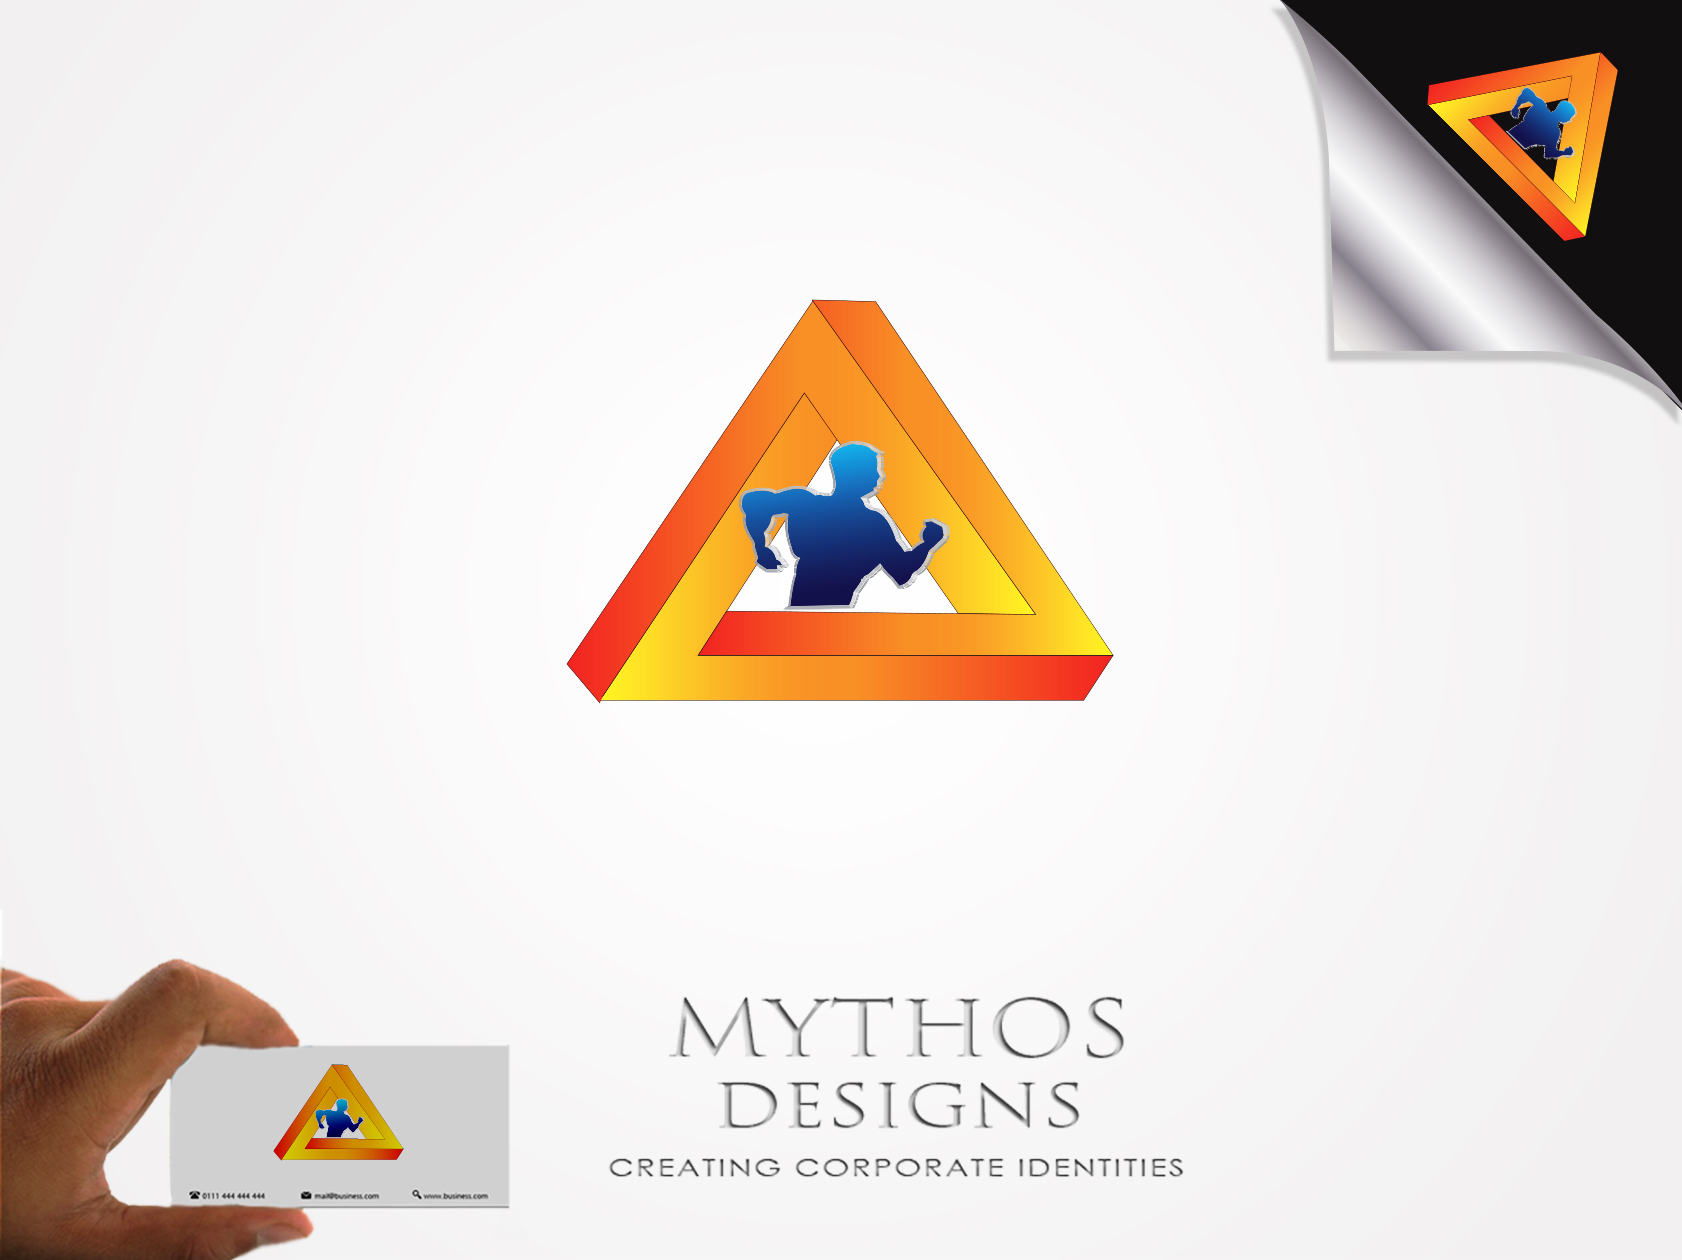 Logo Design by Mythos Designs - Entry No. 14 in the Logo Design Contest Creative Logo Design for STIGMA.